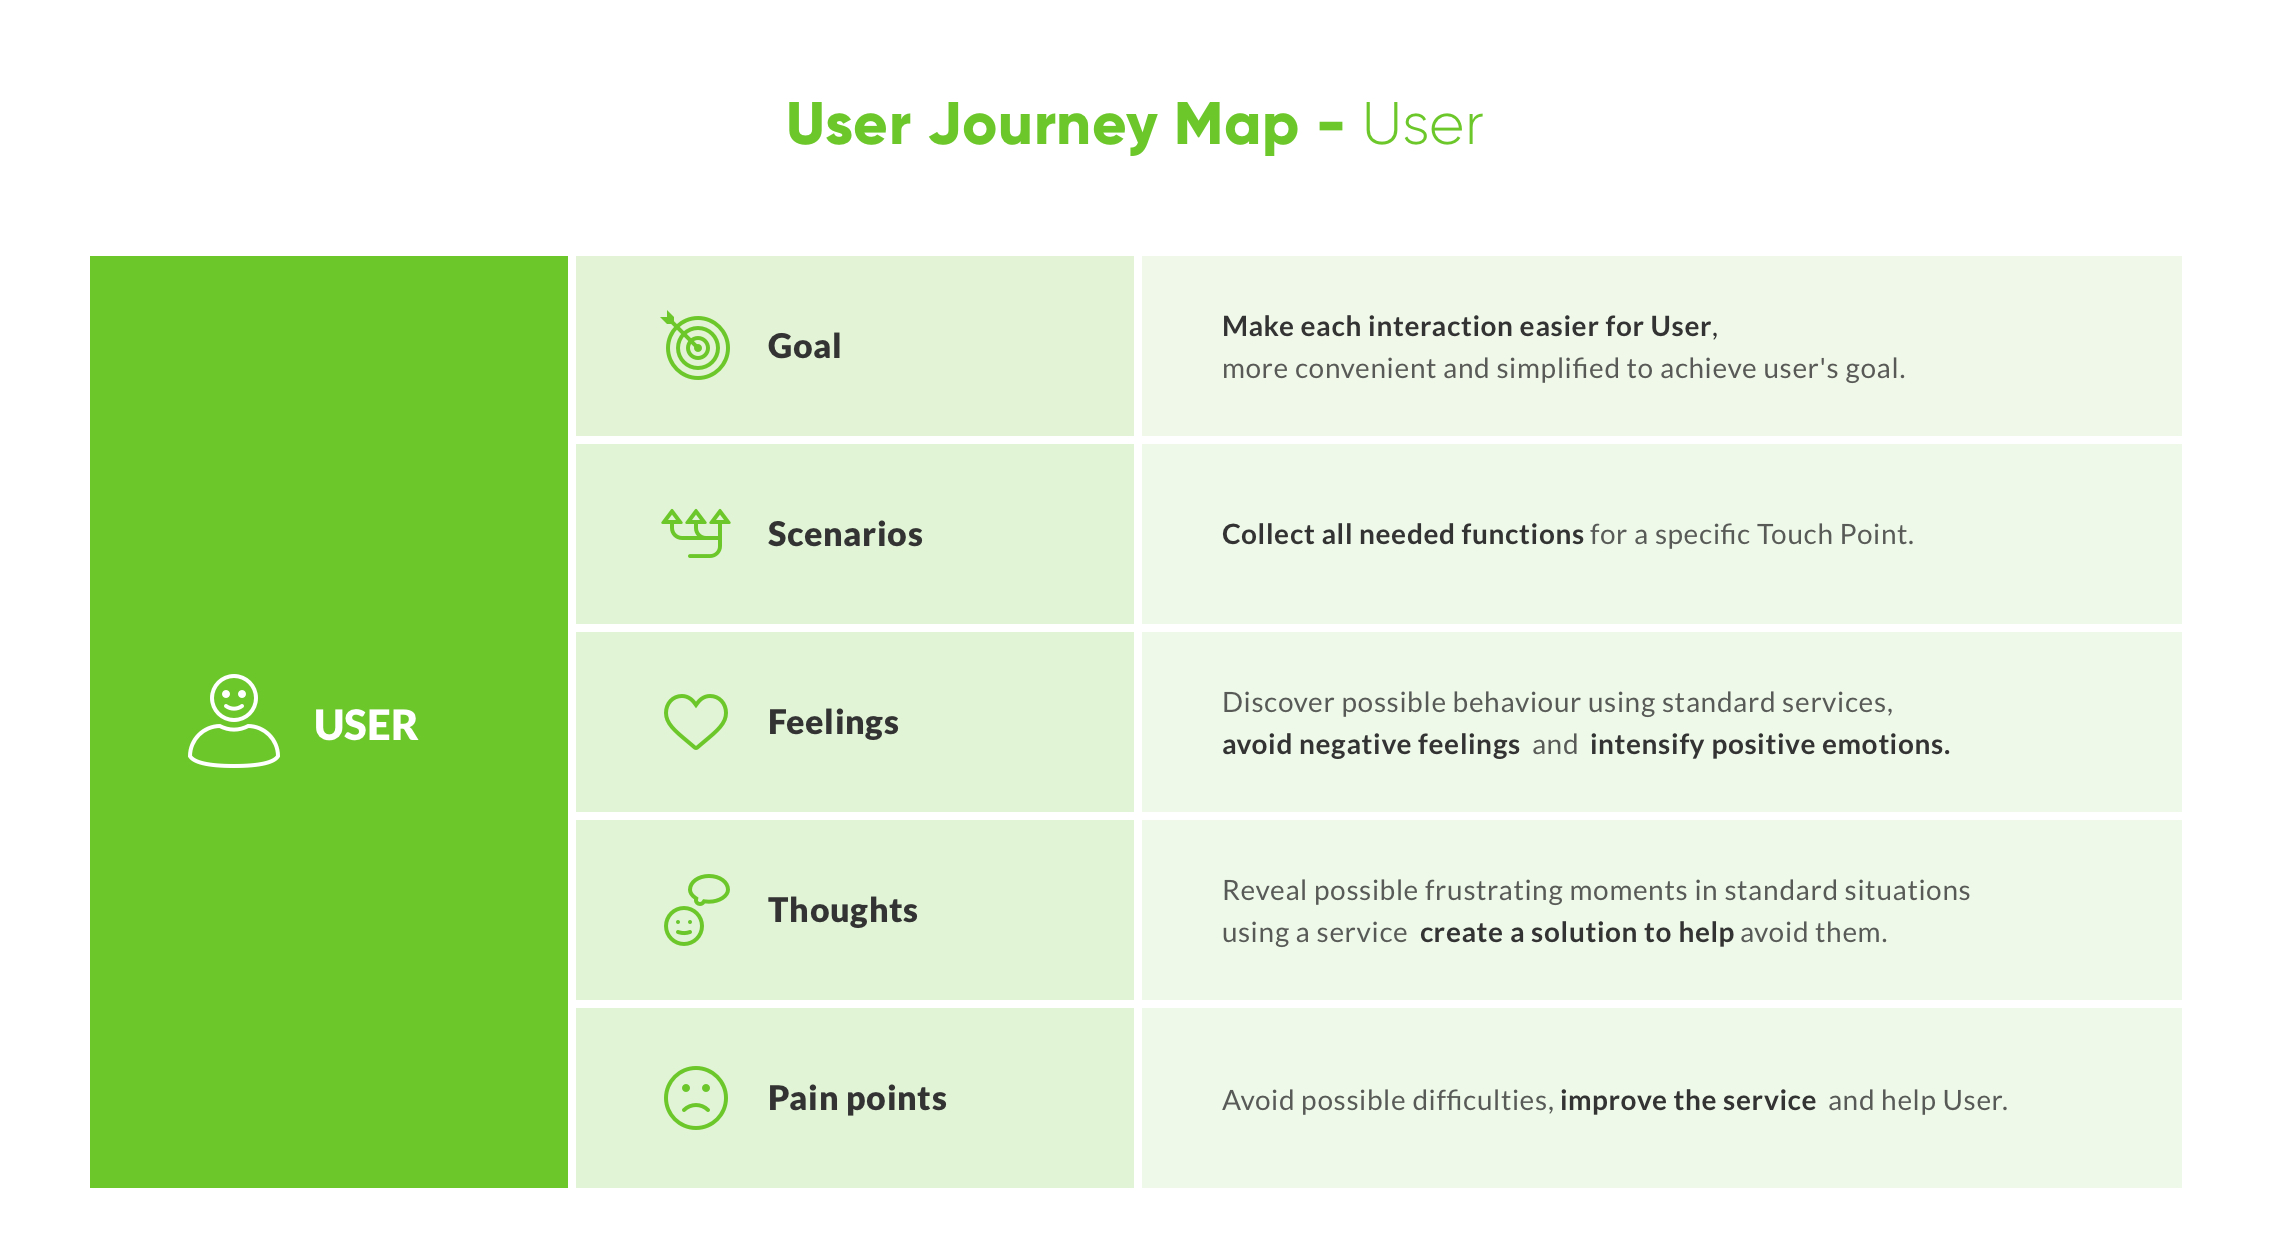 user-journey-mapping-uxda-work-process-ux-design.jpg-L-2.jpg